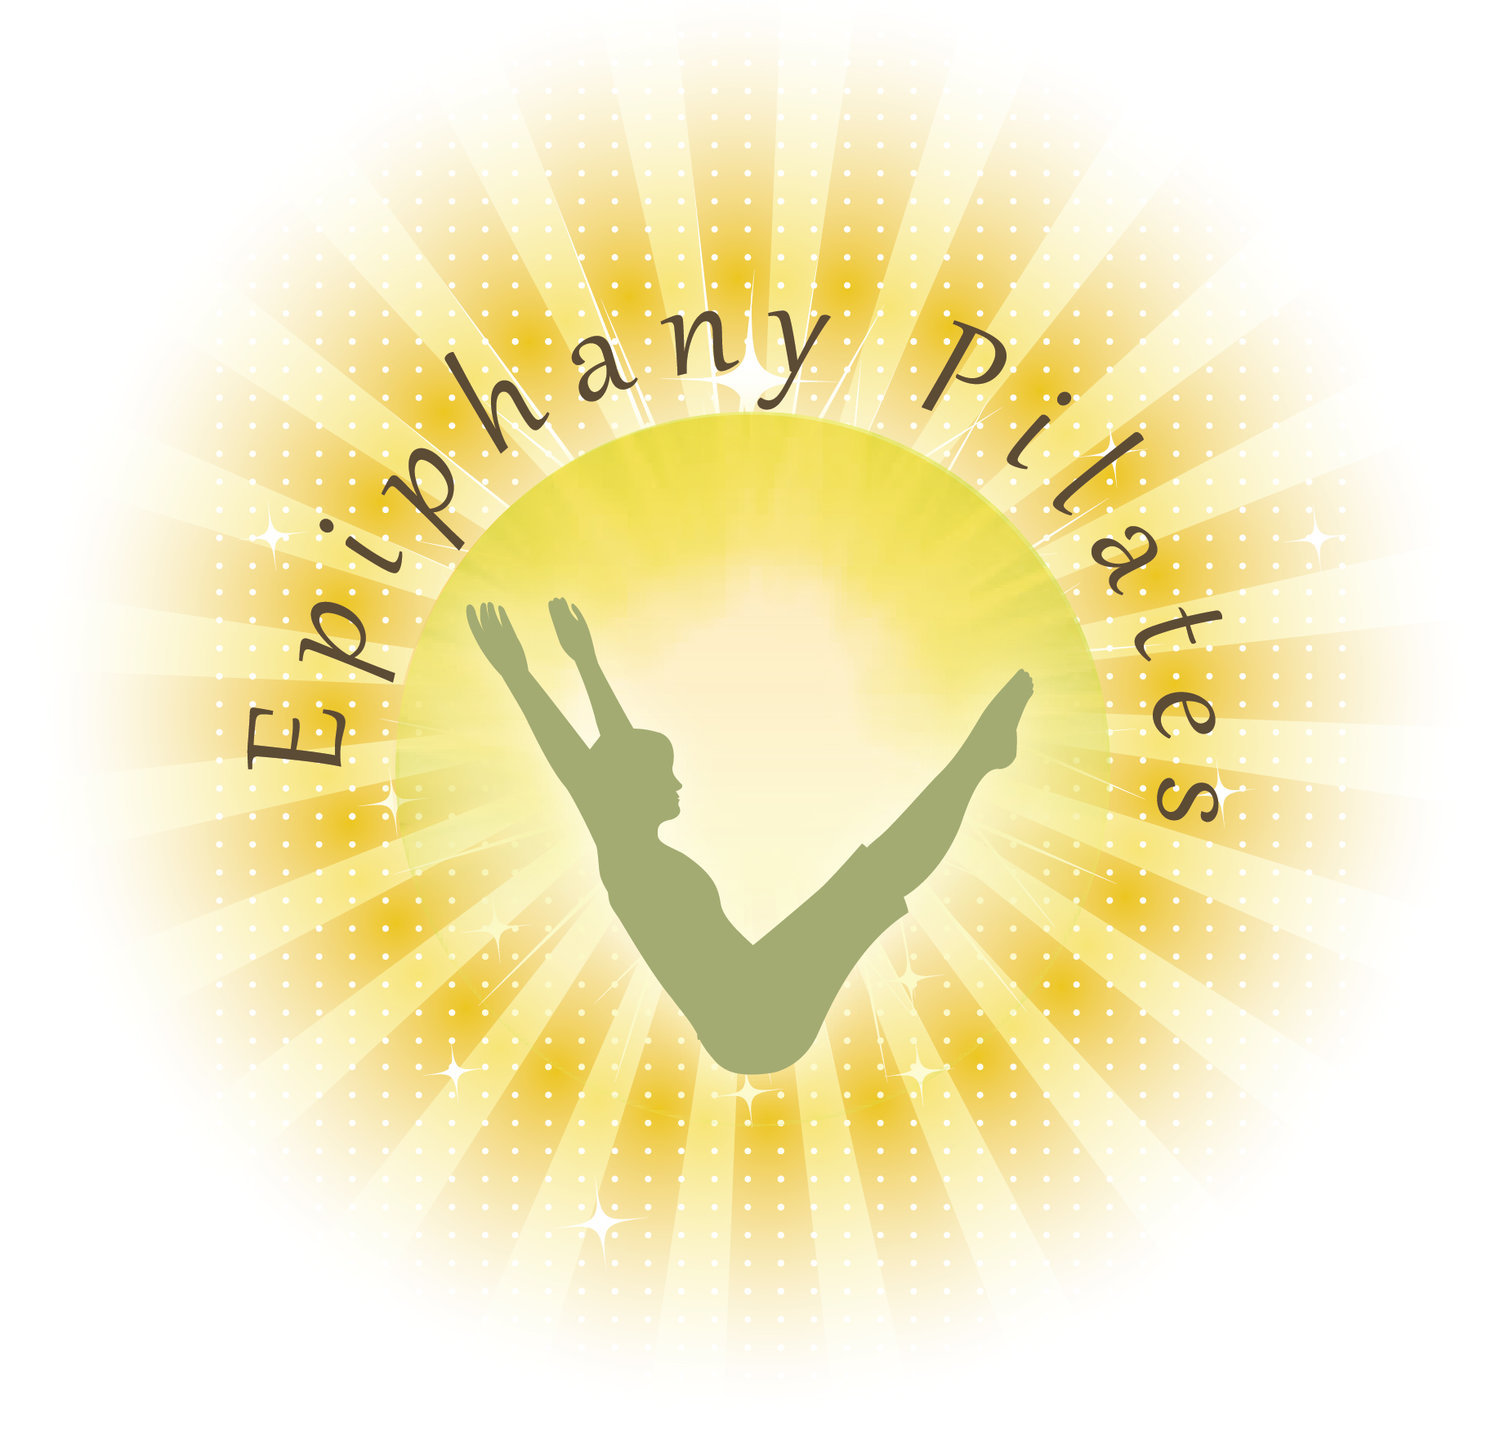 Epiphany Pilates in Fairfax, Virginia - Pilates, Barre, and Yoga